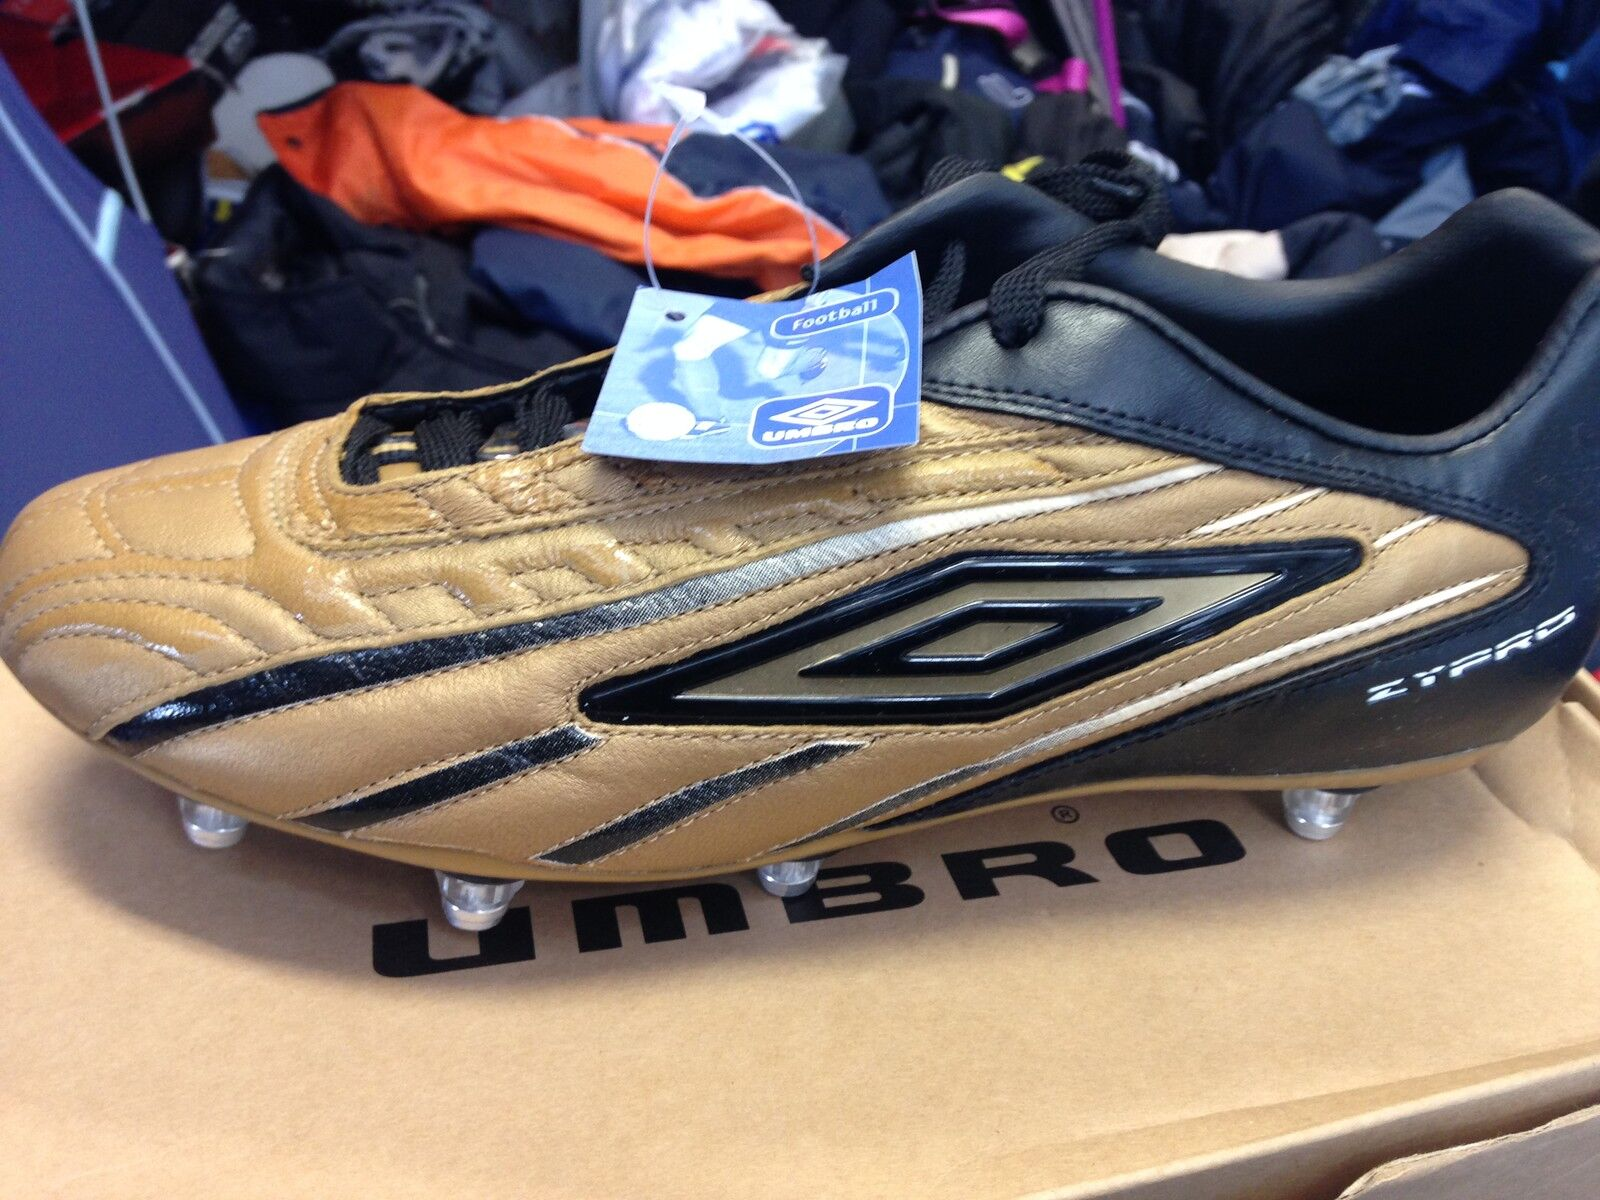 UMBRO ZY PRO  gold  football BOOTt in leather size 7 8 OR 9 uk at